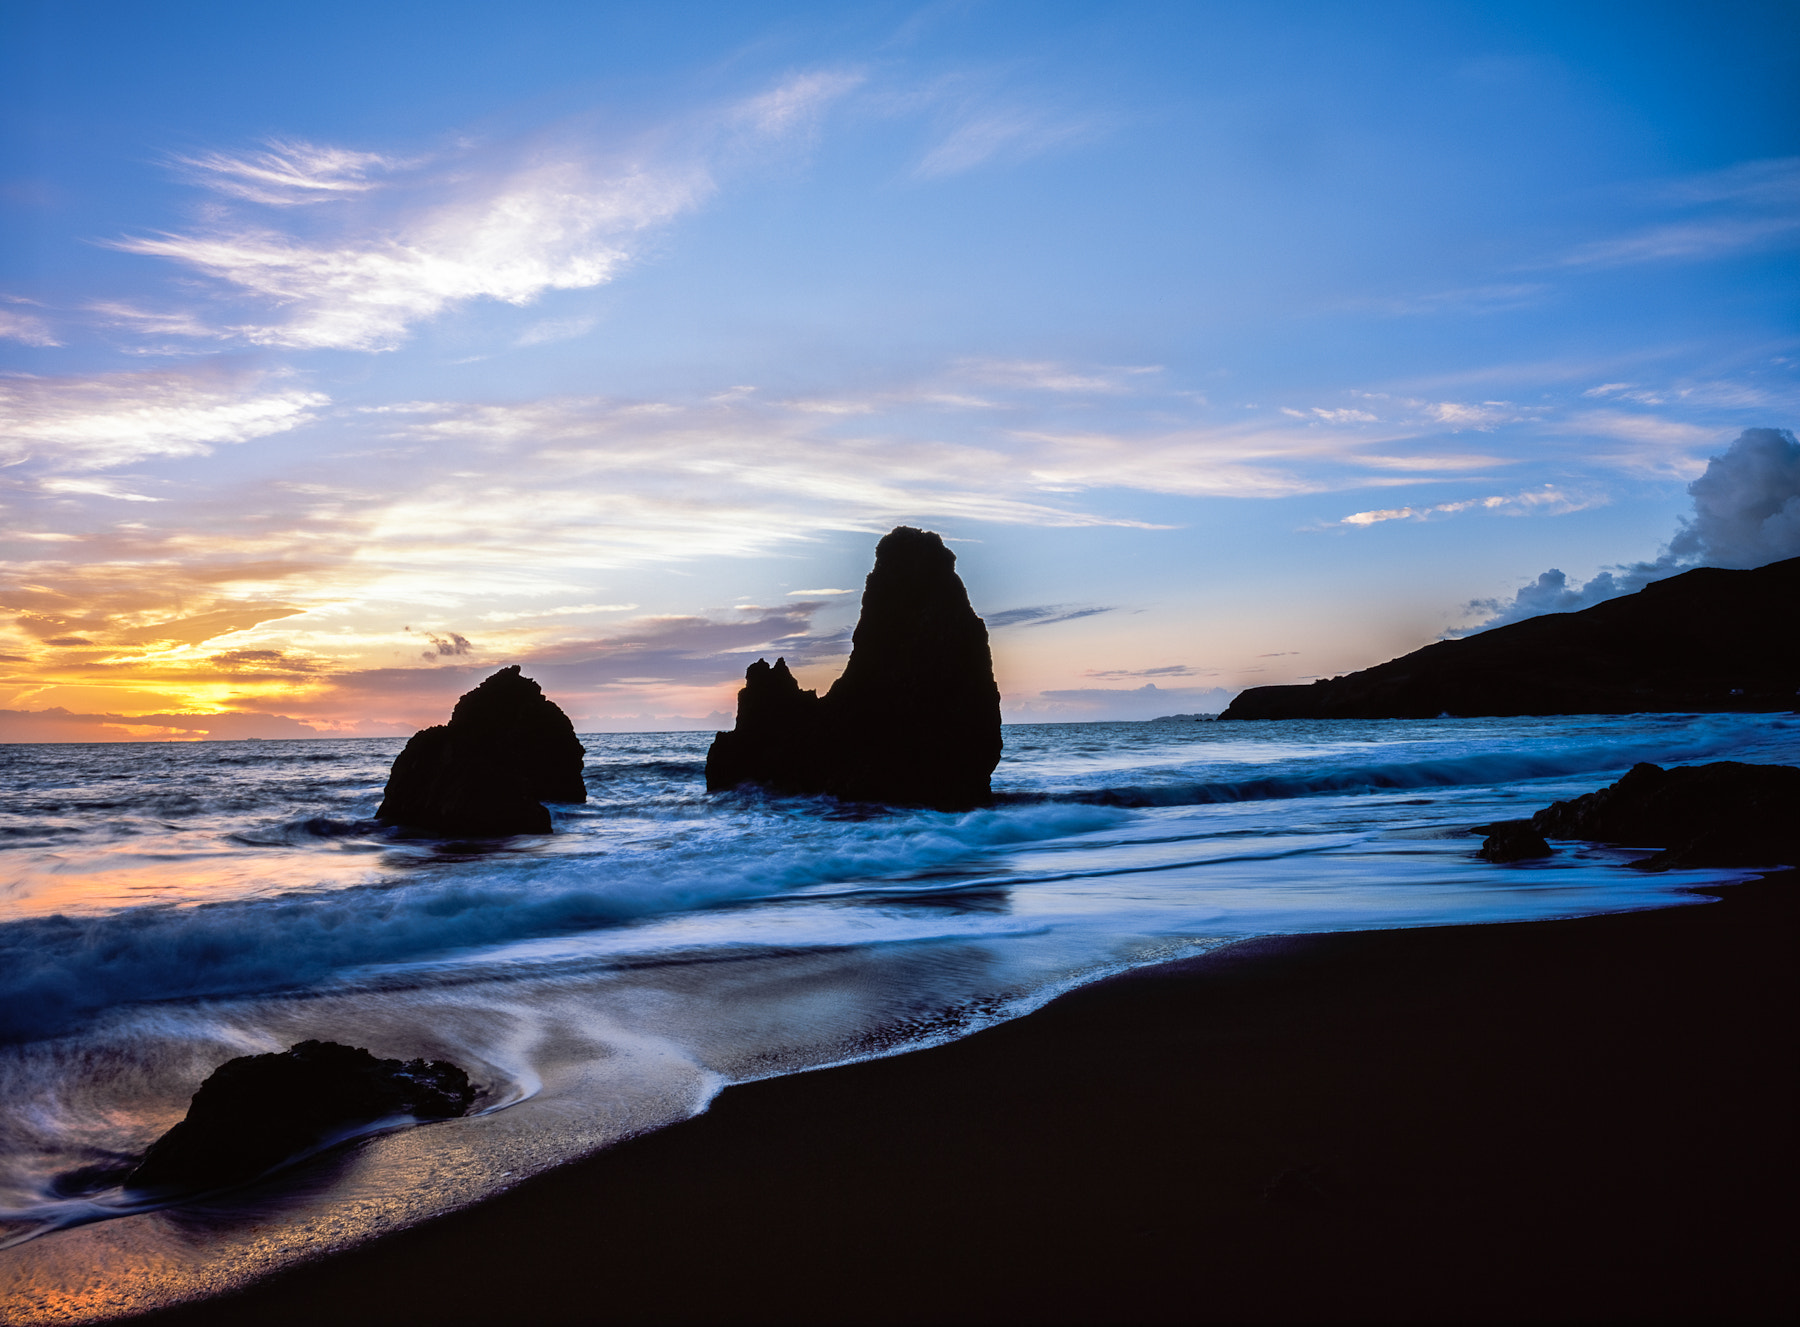 Photograph Rodeo beach by jeanbaptiste chaput on 500px